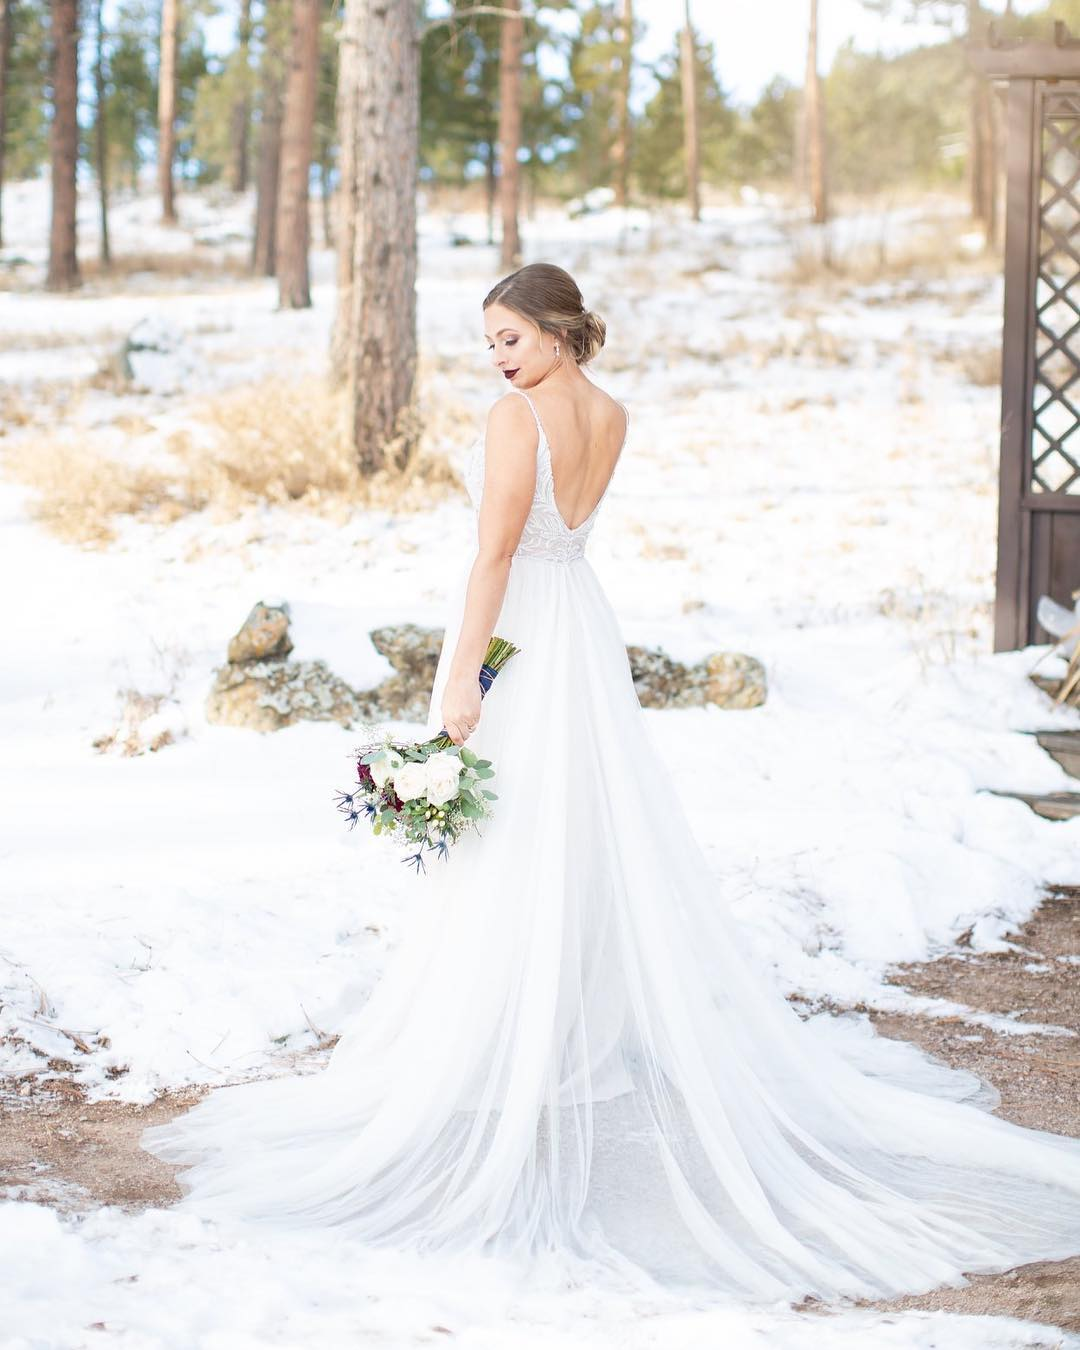 What a beautiful December bride!